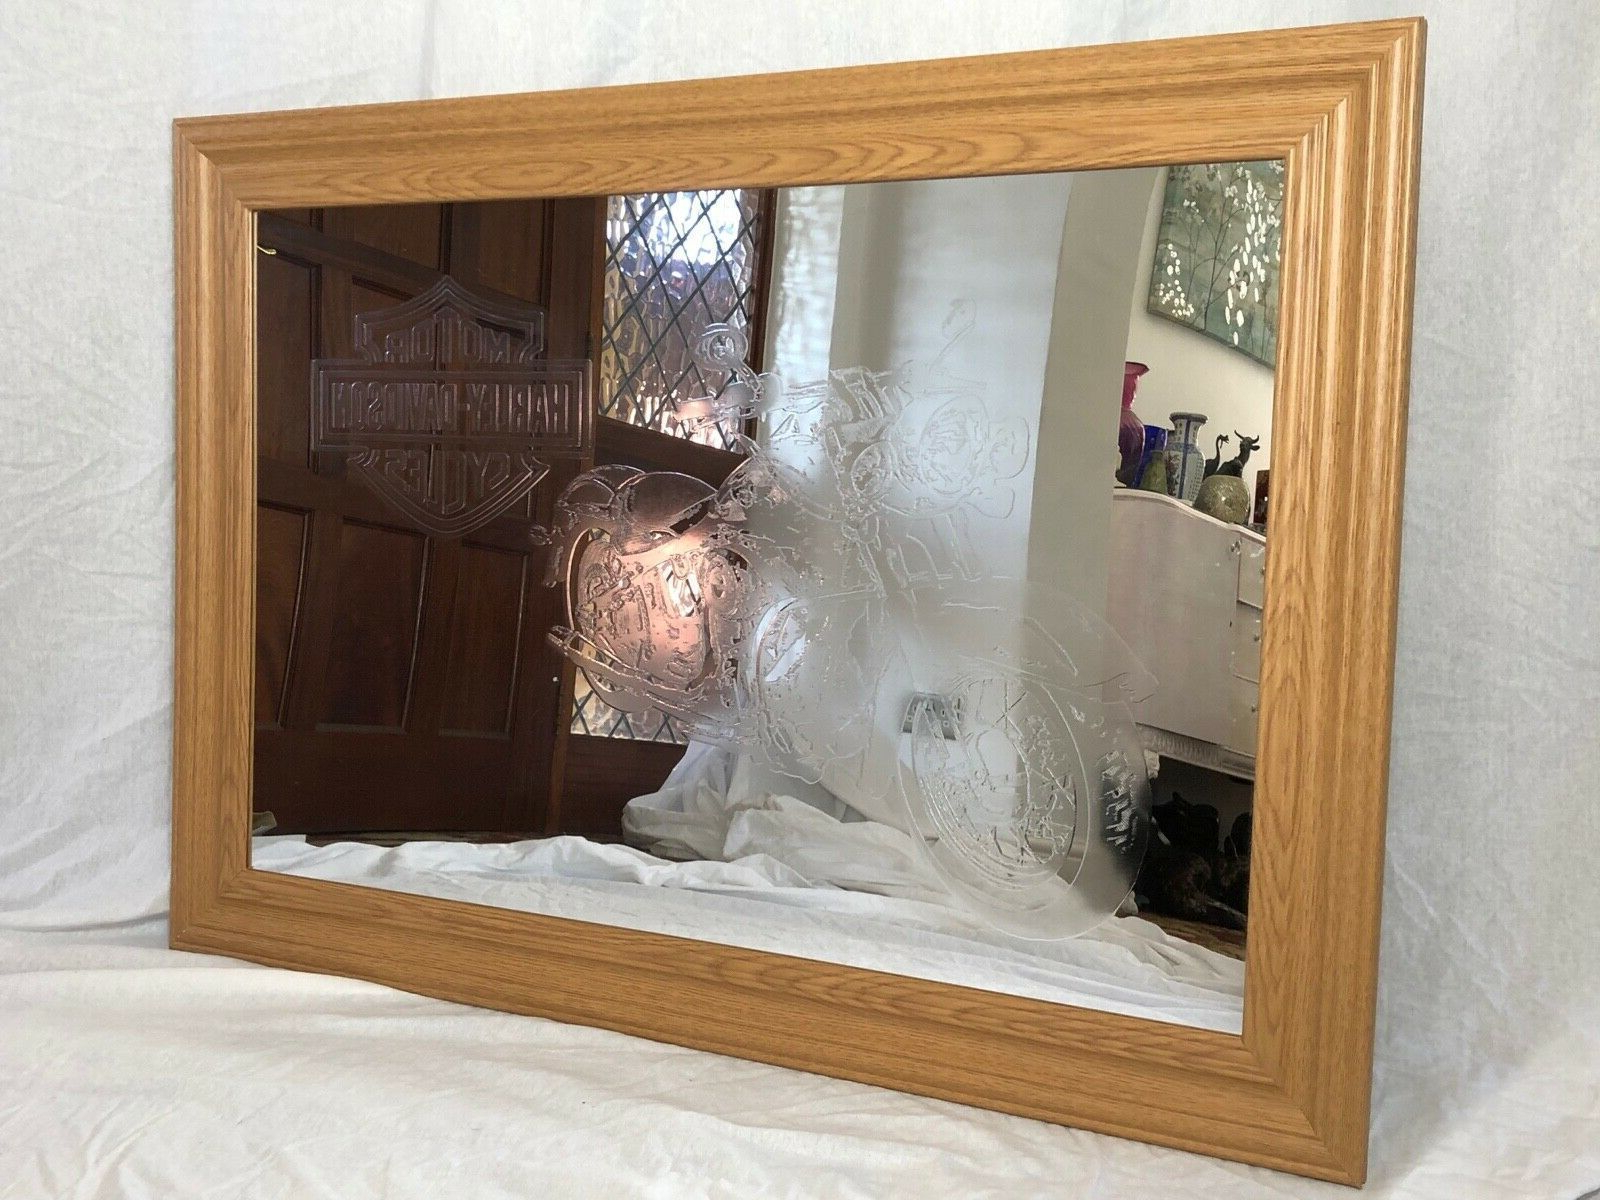 Well Known Large Decorative Etched Motor Harley Davidson Cycles Style Wall Mirror Hotel Bar For Harley Davidson Wall Mirrors (Gallery 5 of 20)